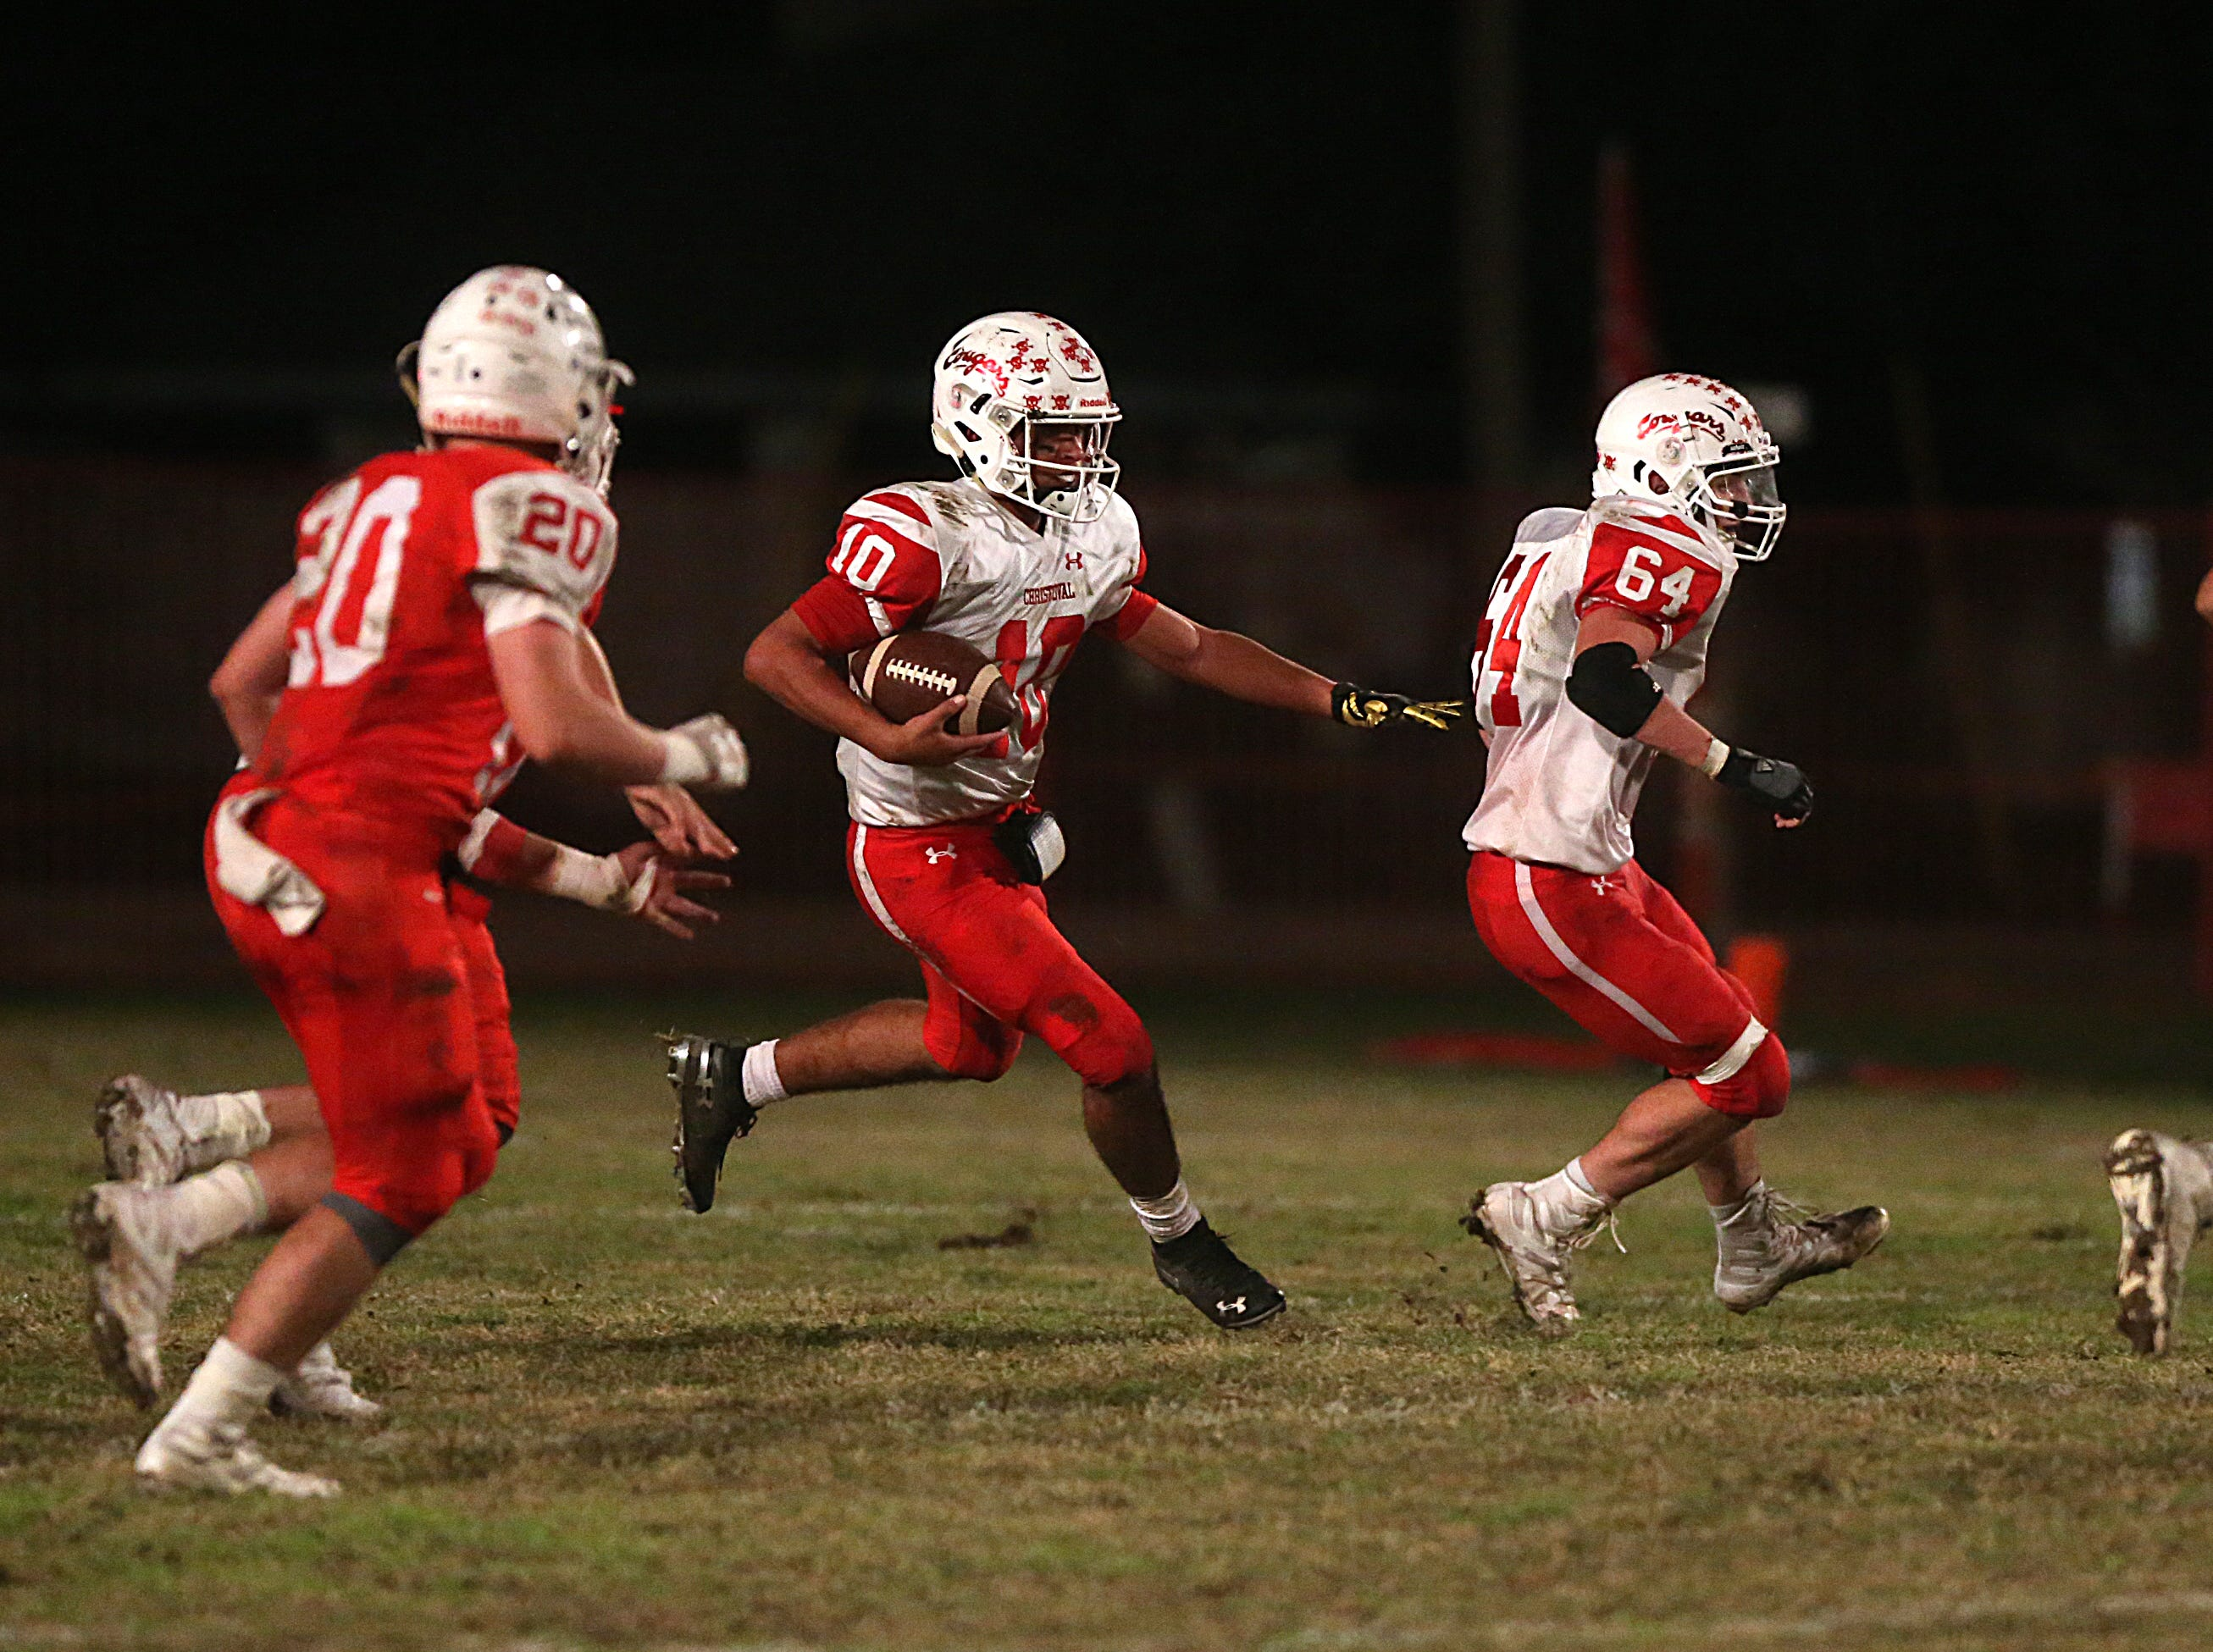 Christoval's Brayden Wilcox (#10) makes a play downfield Friday, Nov. 2, 2018 during their game against Miles.